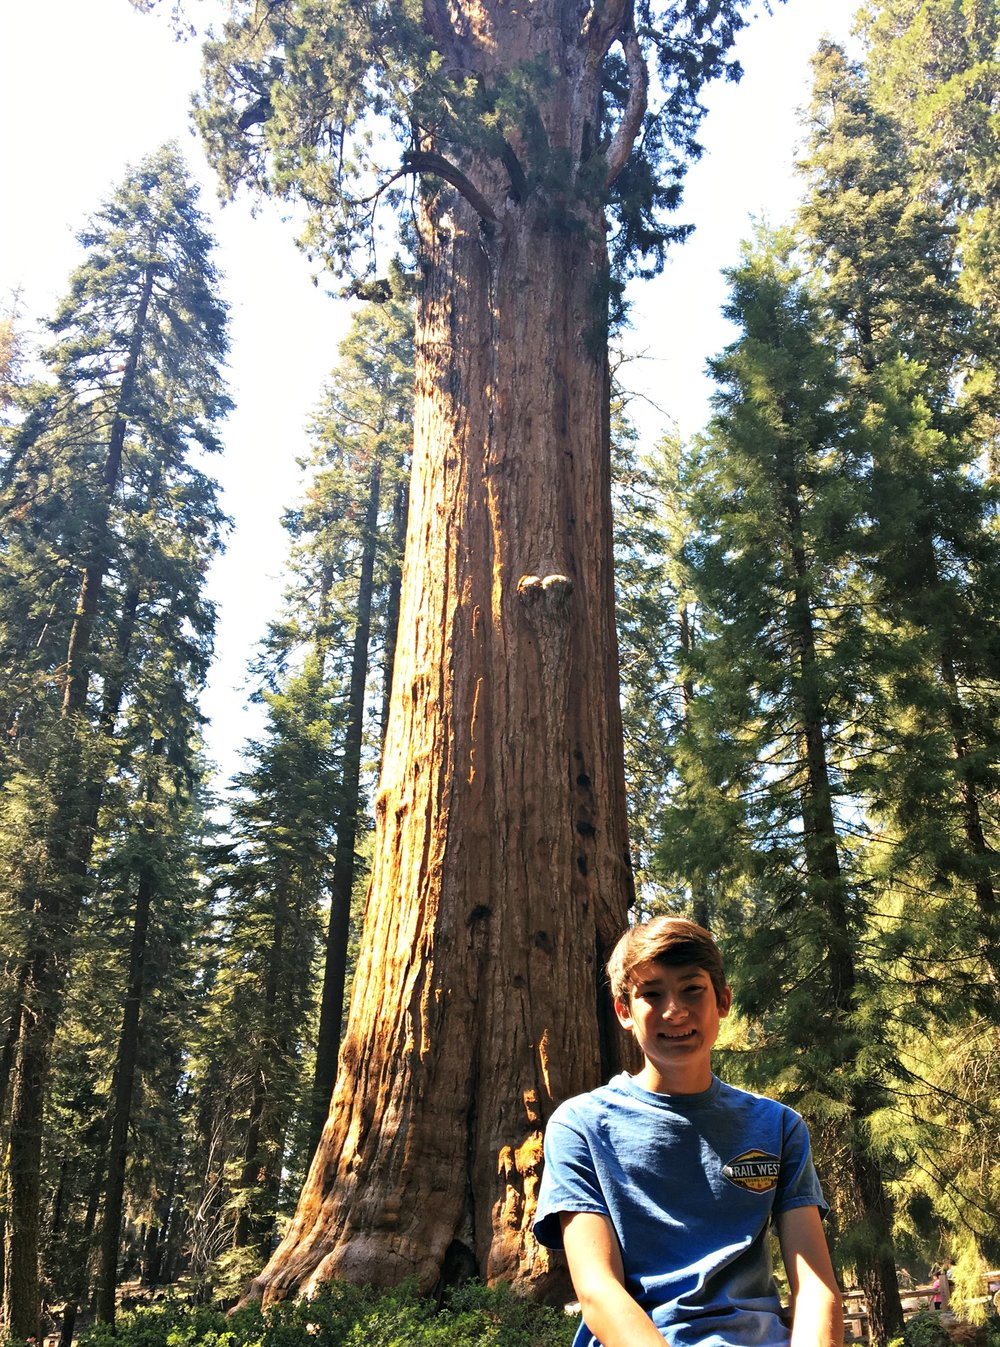 Meeting General Sherman and hiking the easy Congress Trail in Sequoia National Park was a great way to take in wonderful, giant, old Sequoia Redwoods in an up-close personal way. We fell in love with these tall, old, hearty trees as their clusters gladly welcomed us in.